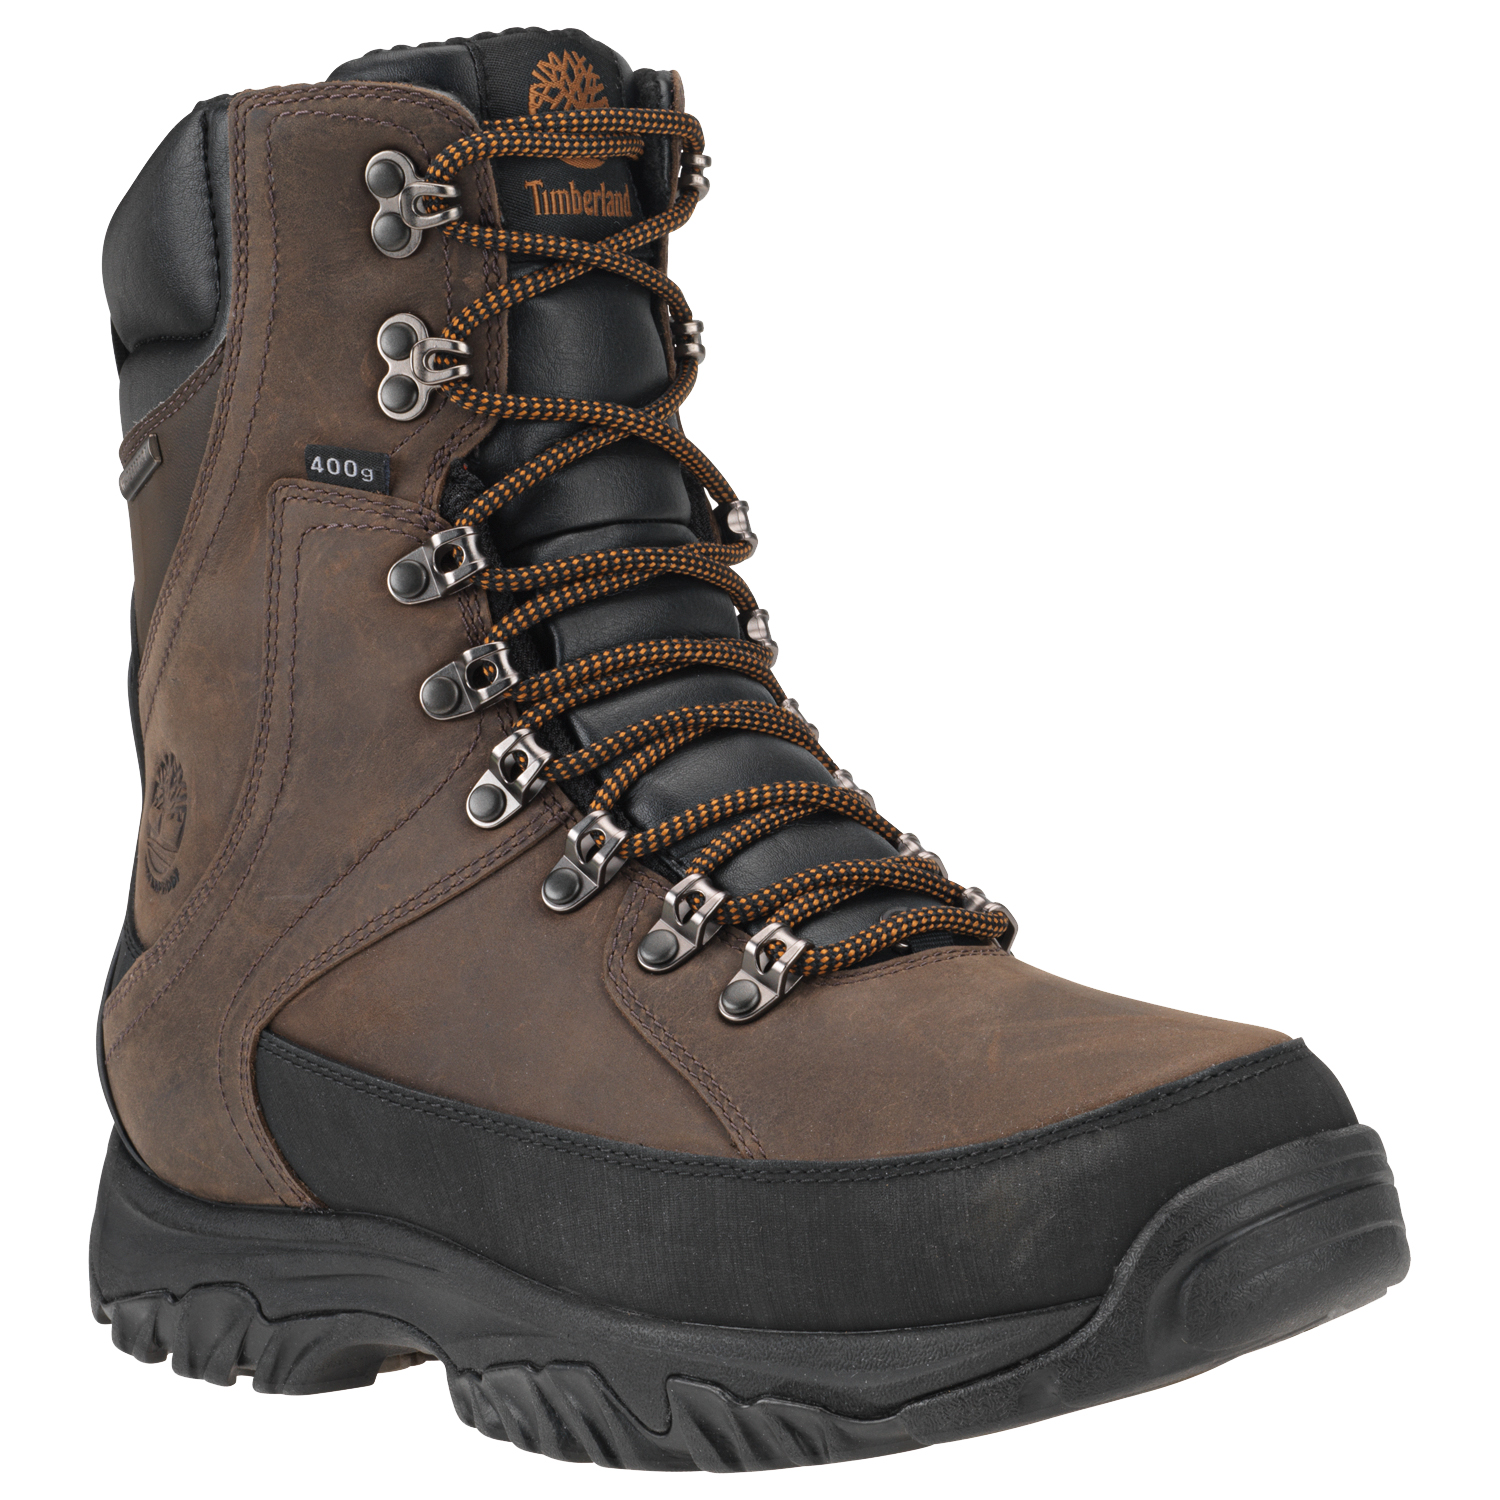 aae7ee5678d76a Timberland Thorton 8